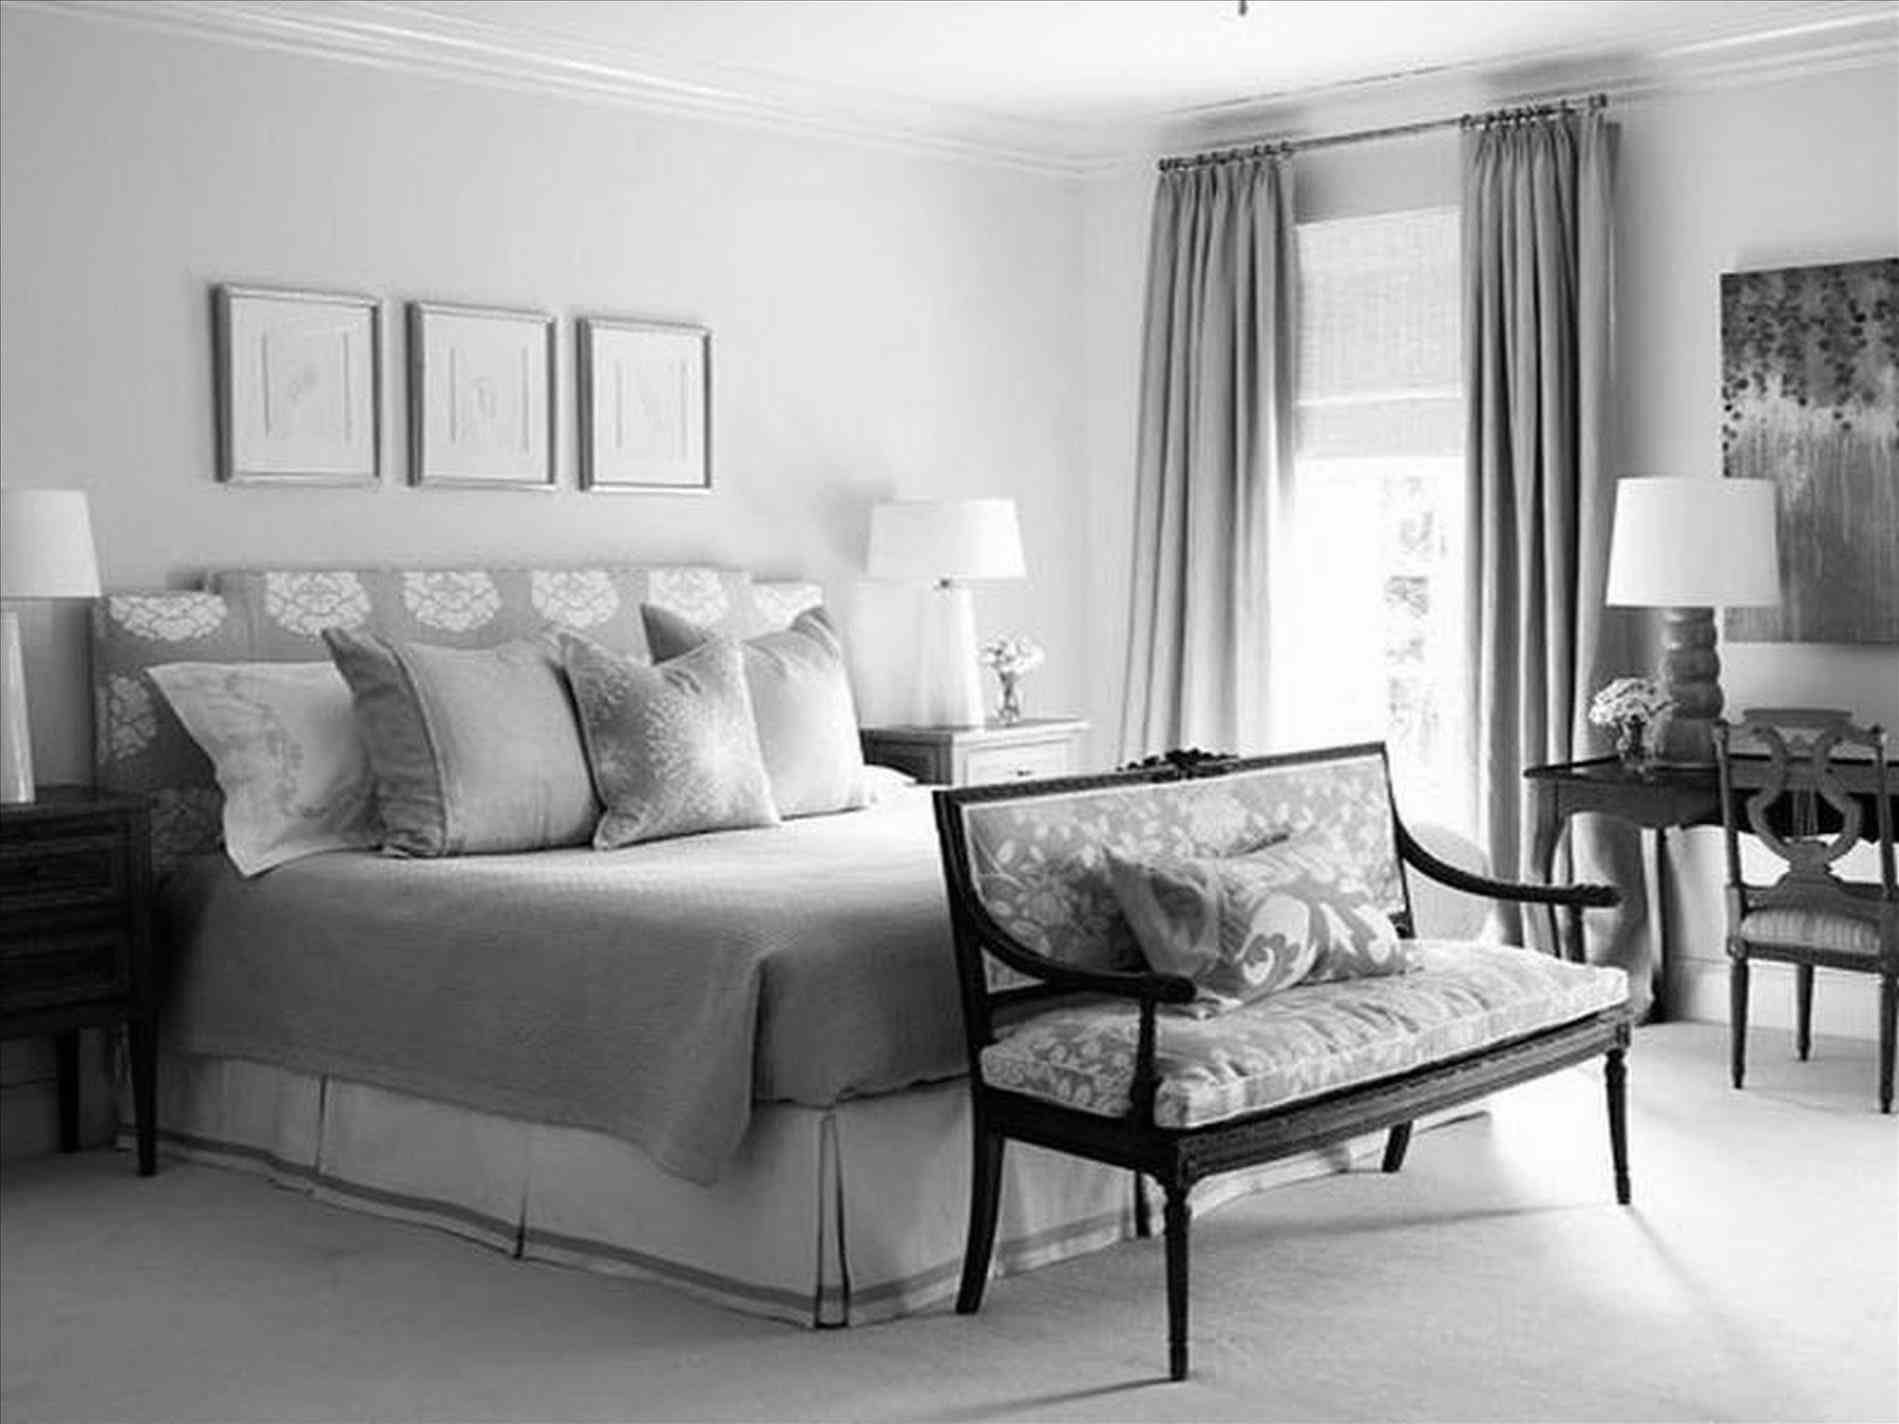 New Post gold and silver bedroom ideas visit Bobayule Trending ...